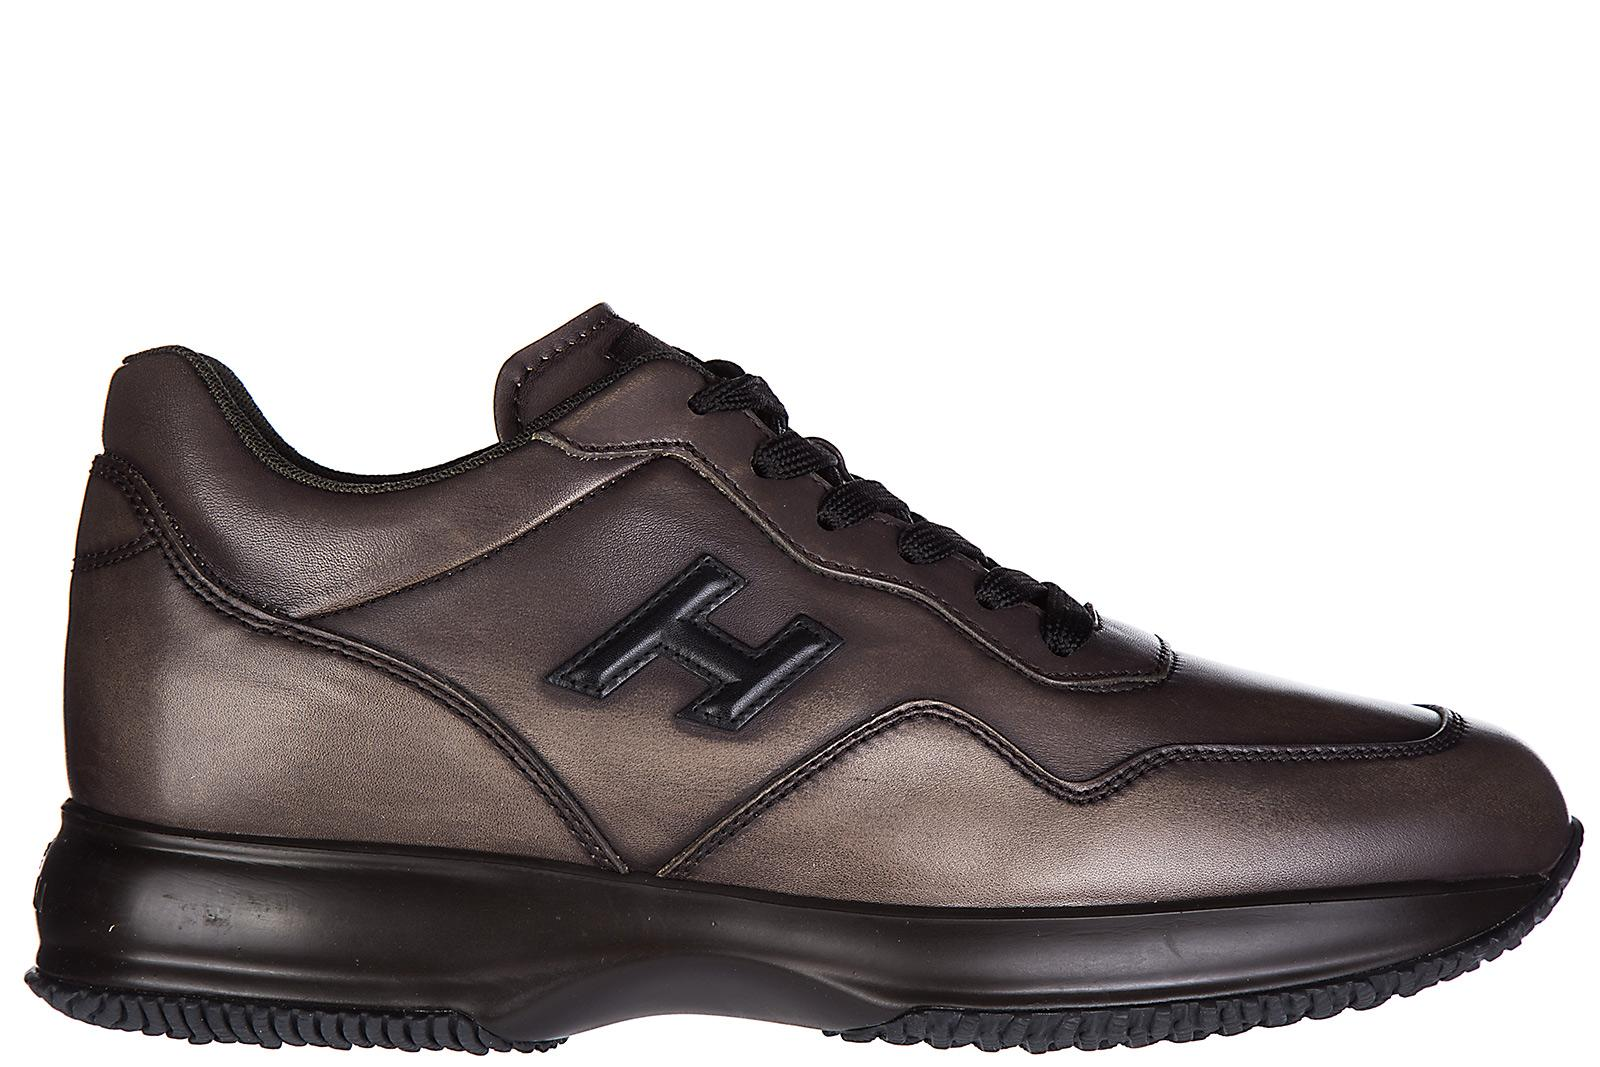 Hogan Men's Shoes Leather Trainers Sneakers Interactive H 3d In Brown